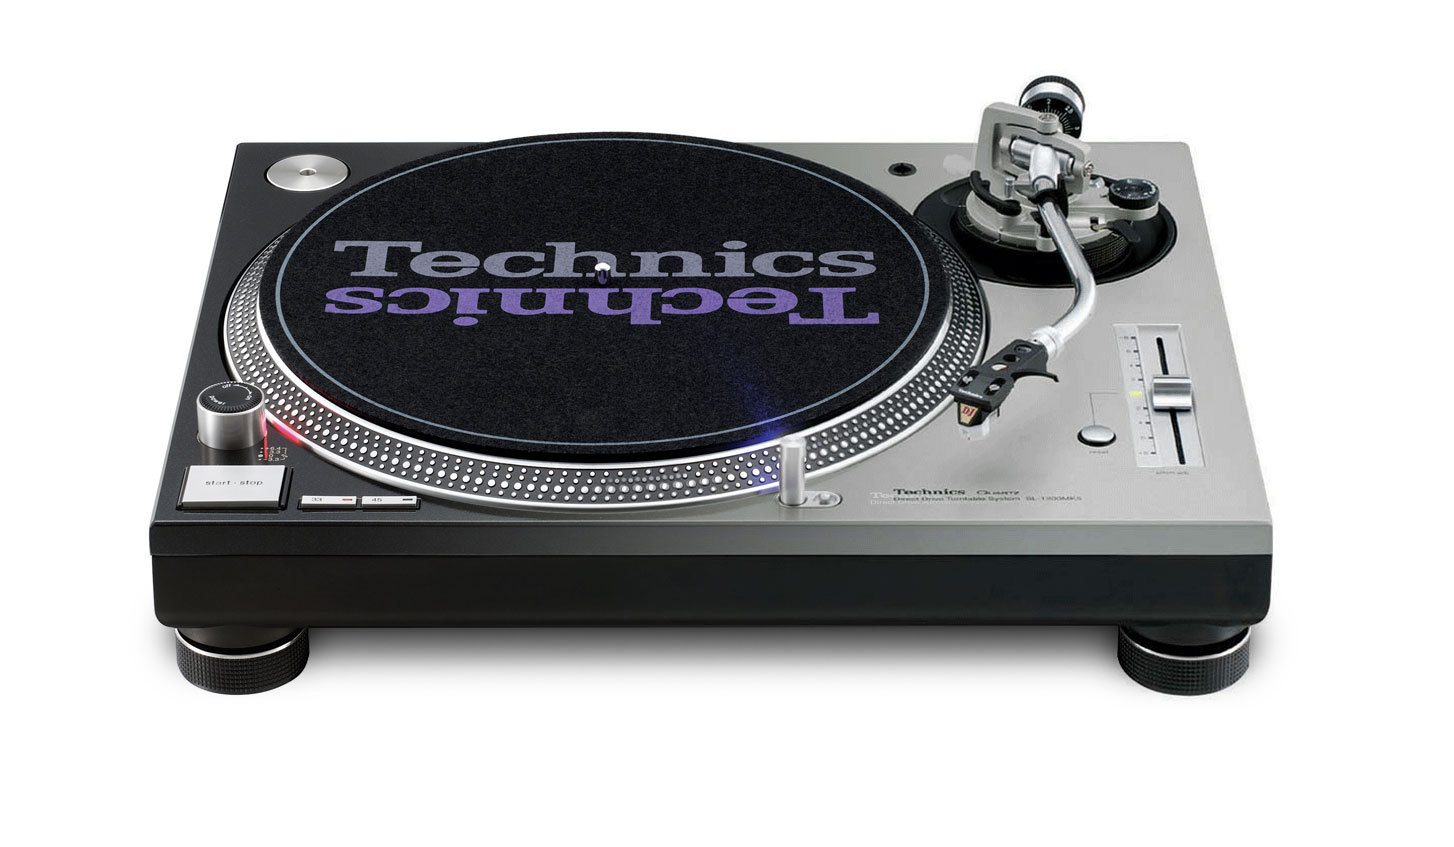 technics SL 1200 1210 turntable